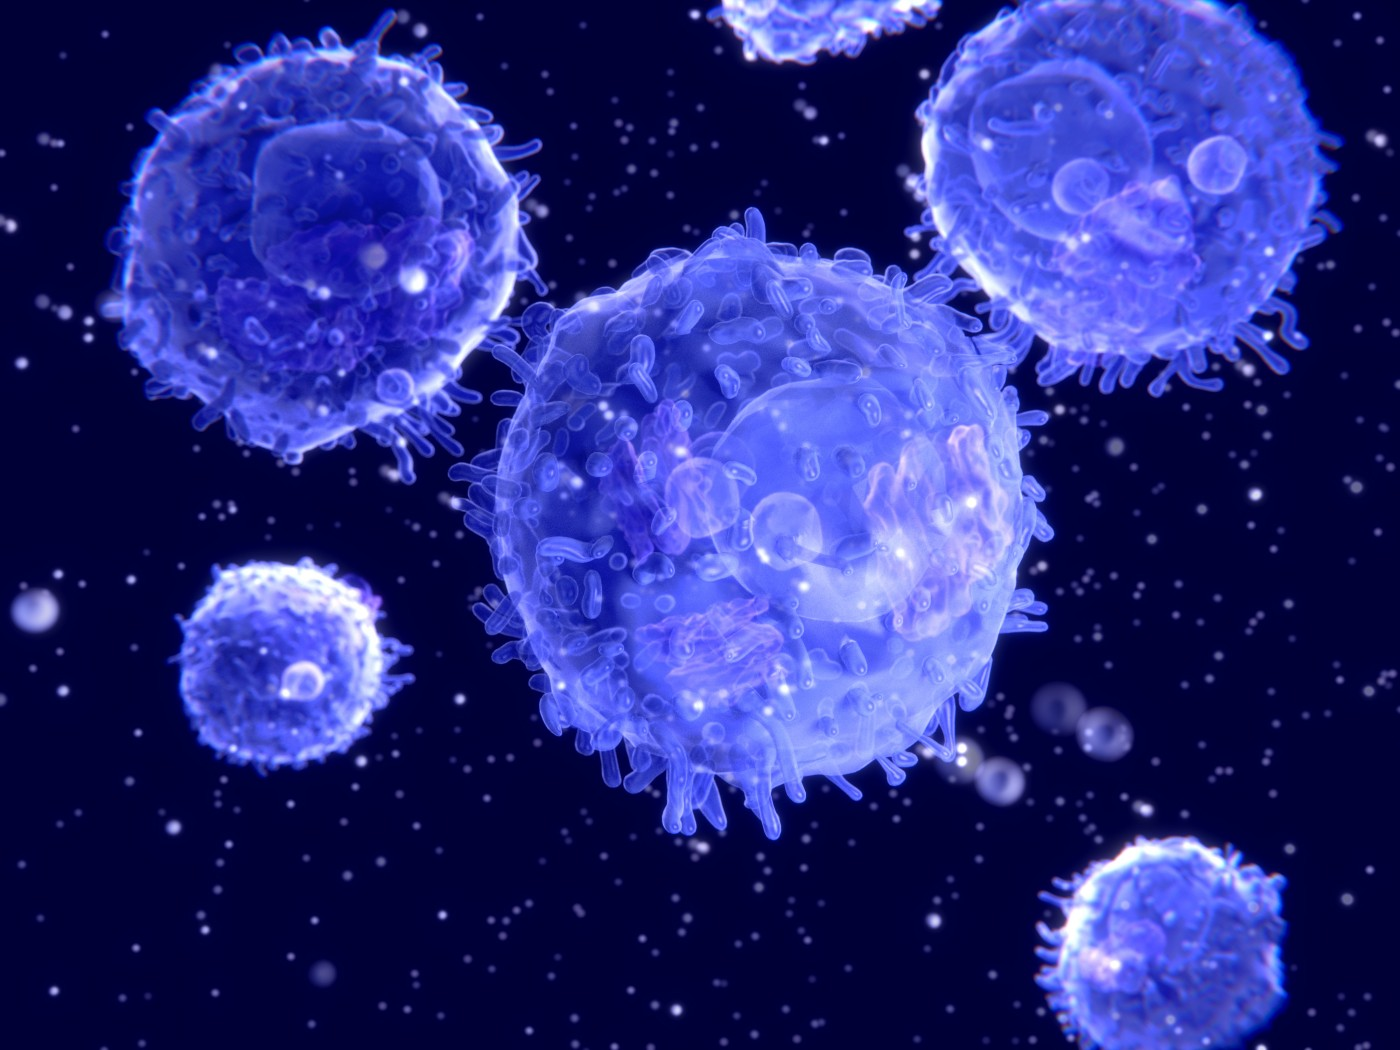 Cancer Immunotherapy Based on Engineered Immune Cells as a Promising Approach Against Myeloma